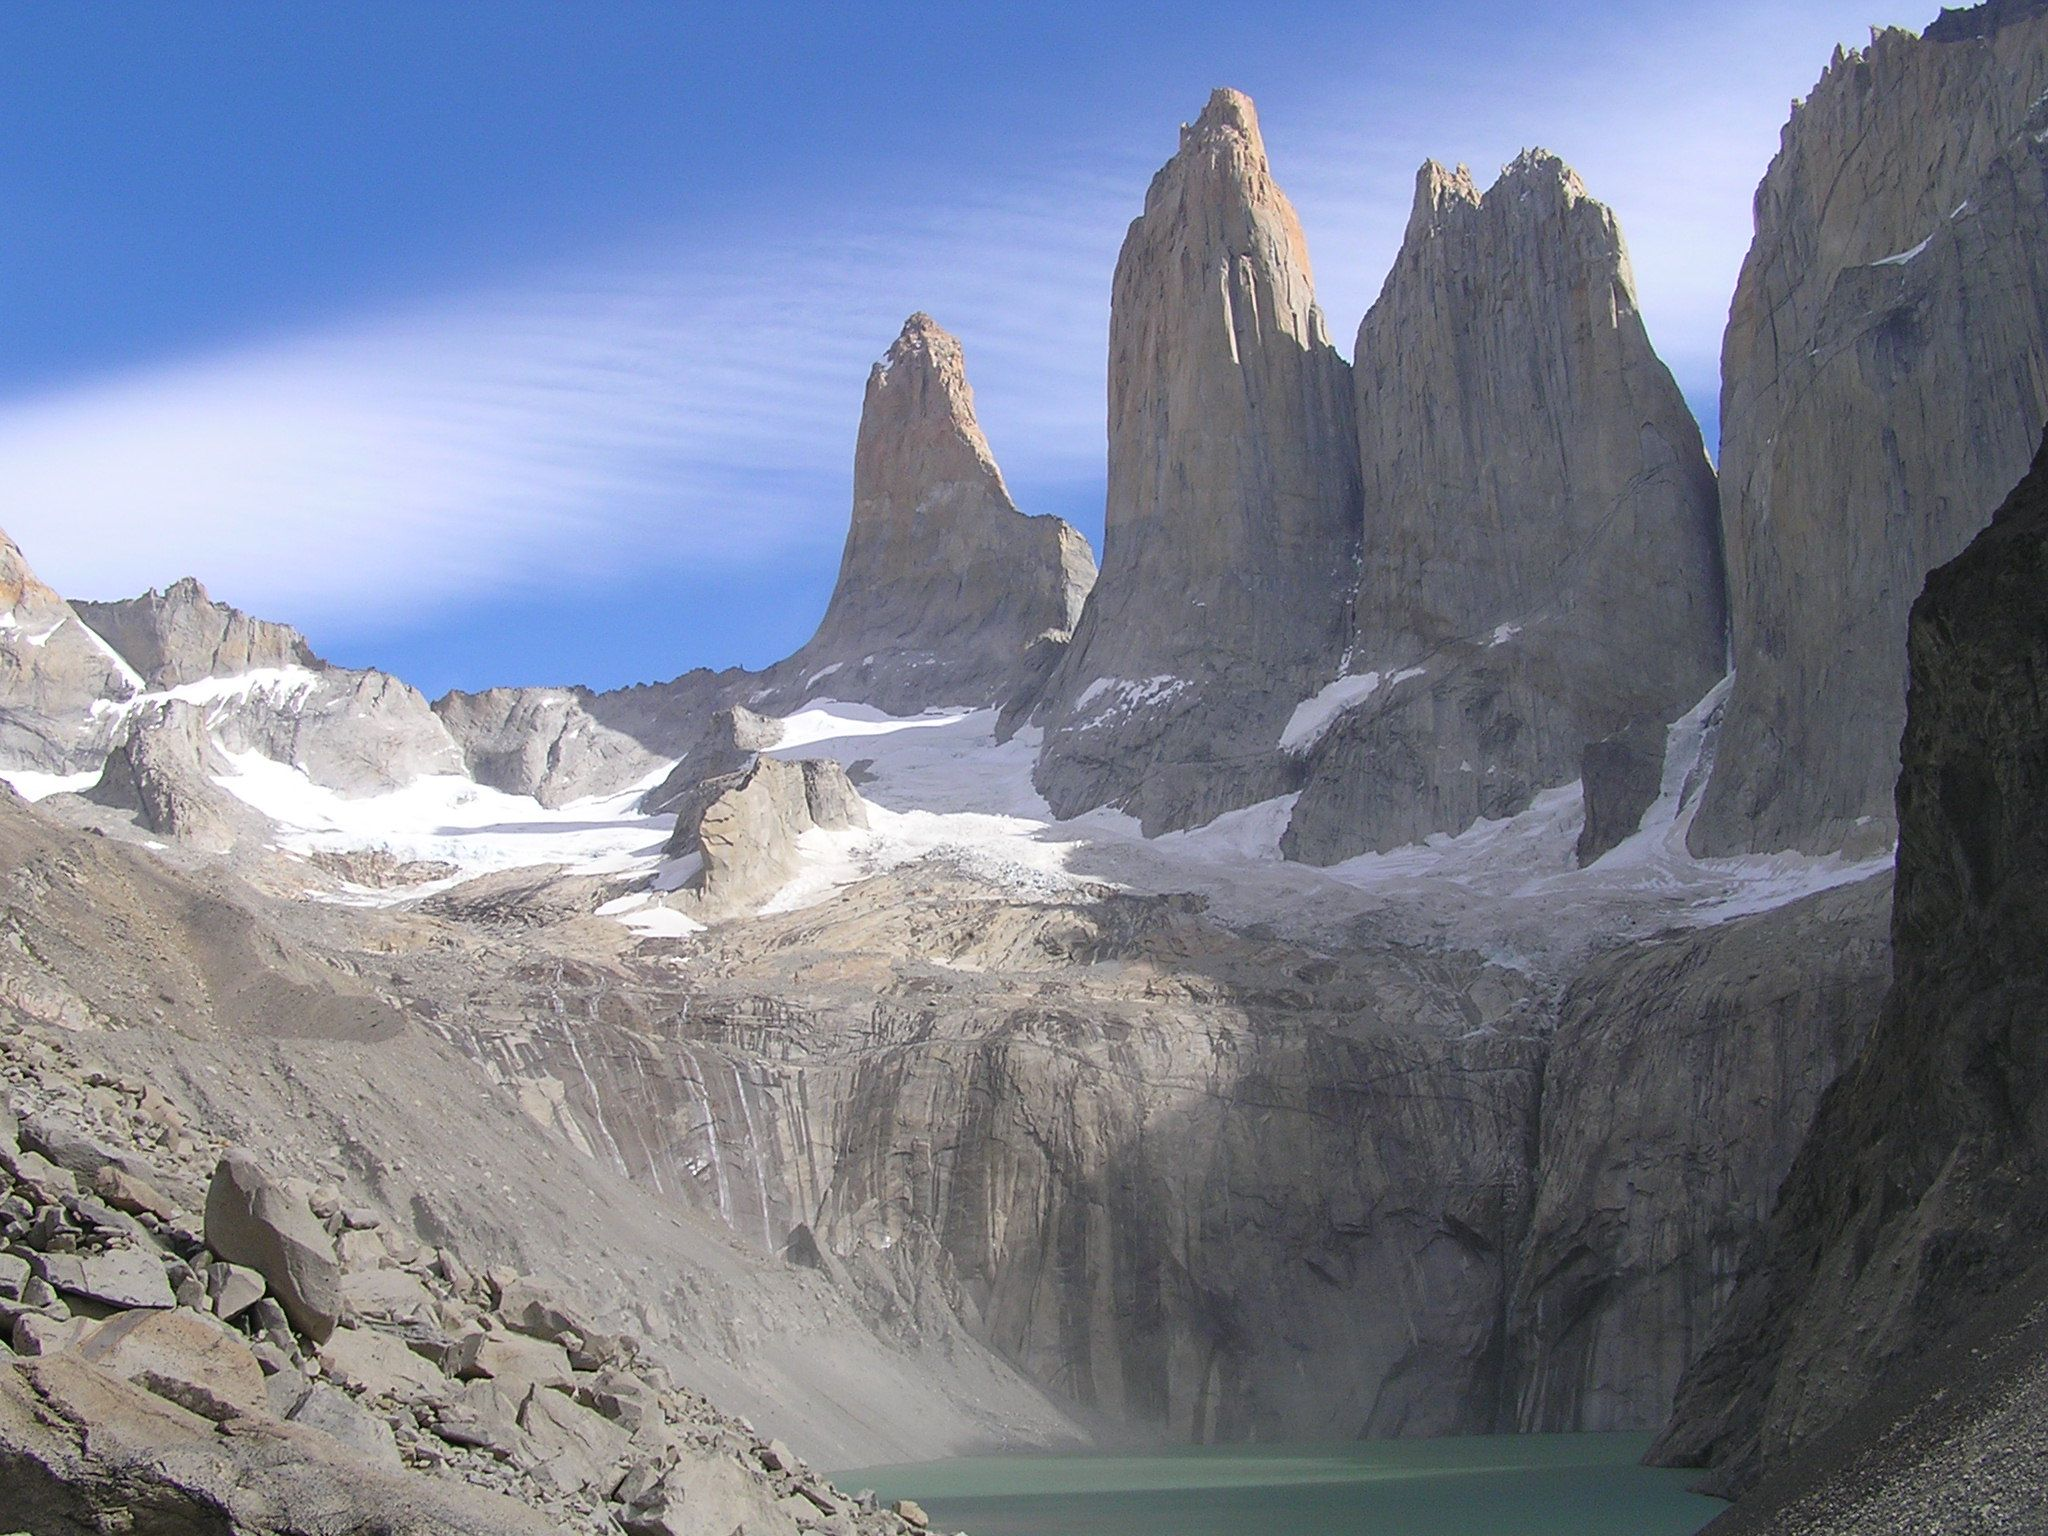 Torres del Paine National Park Chile See our Patagonia Tours